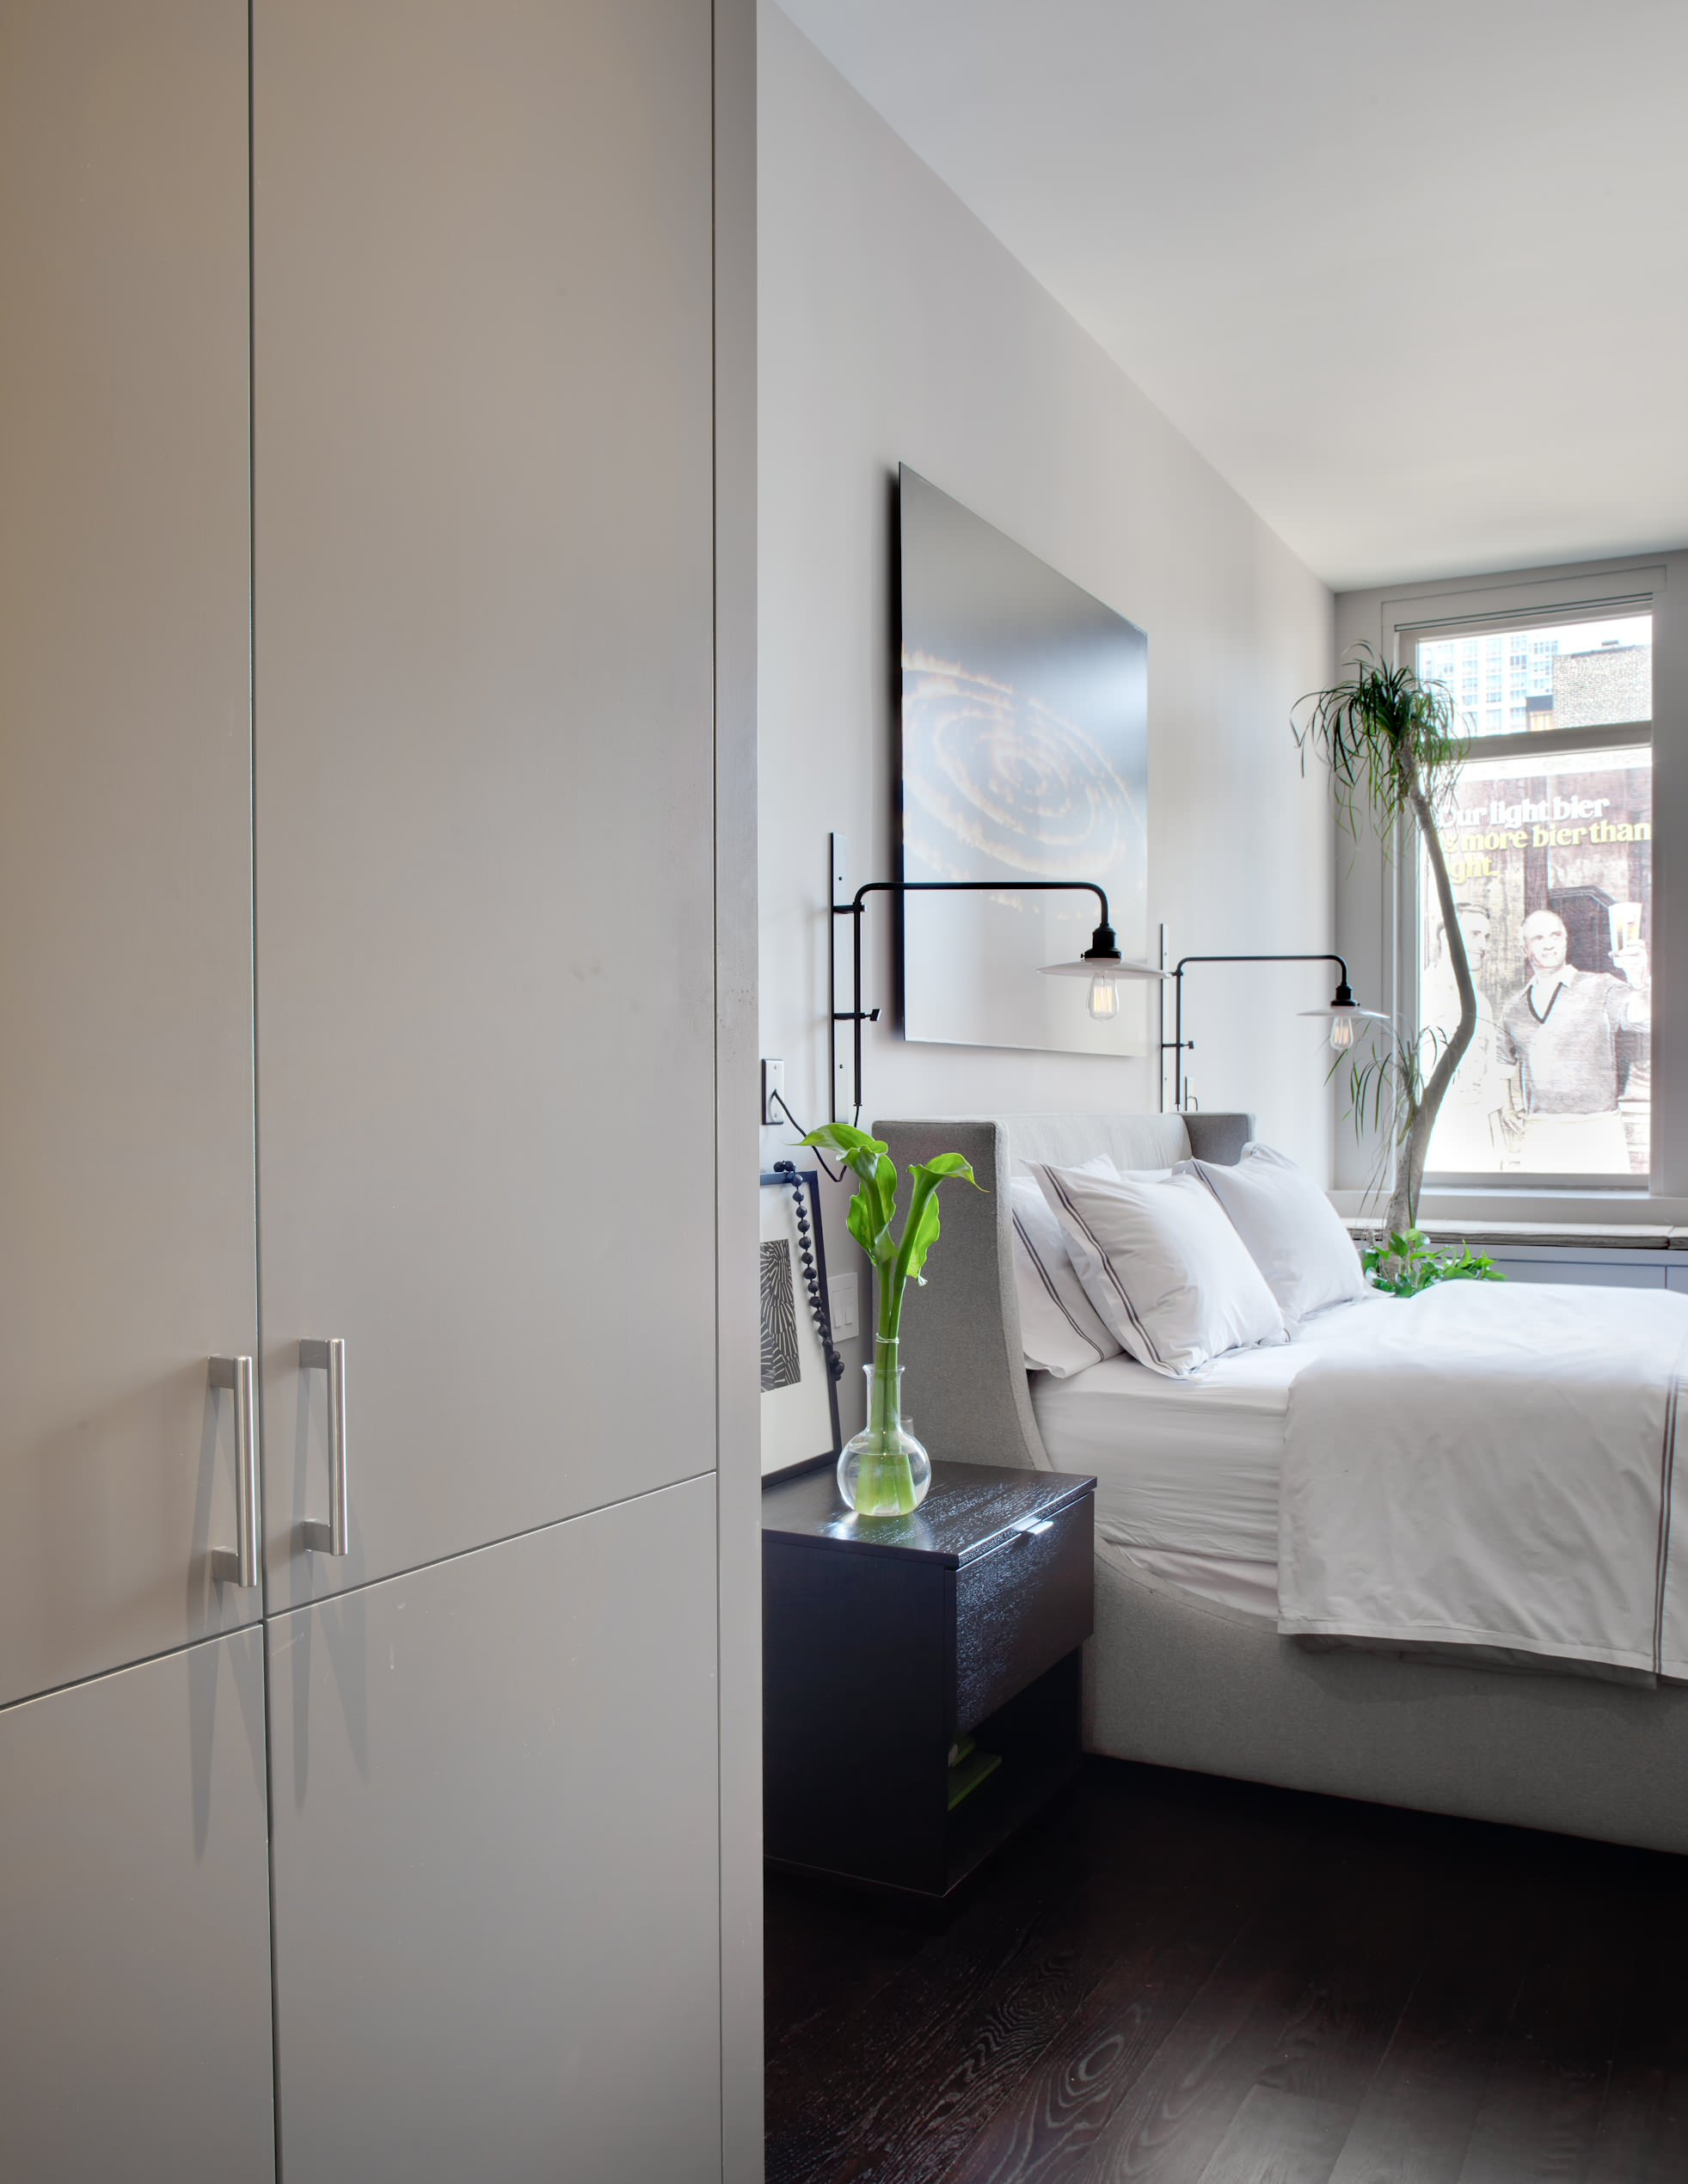 9 bright ideas for bedside lighting houzz au